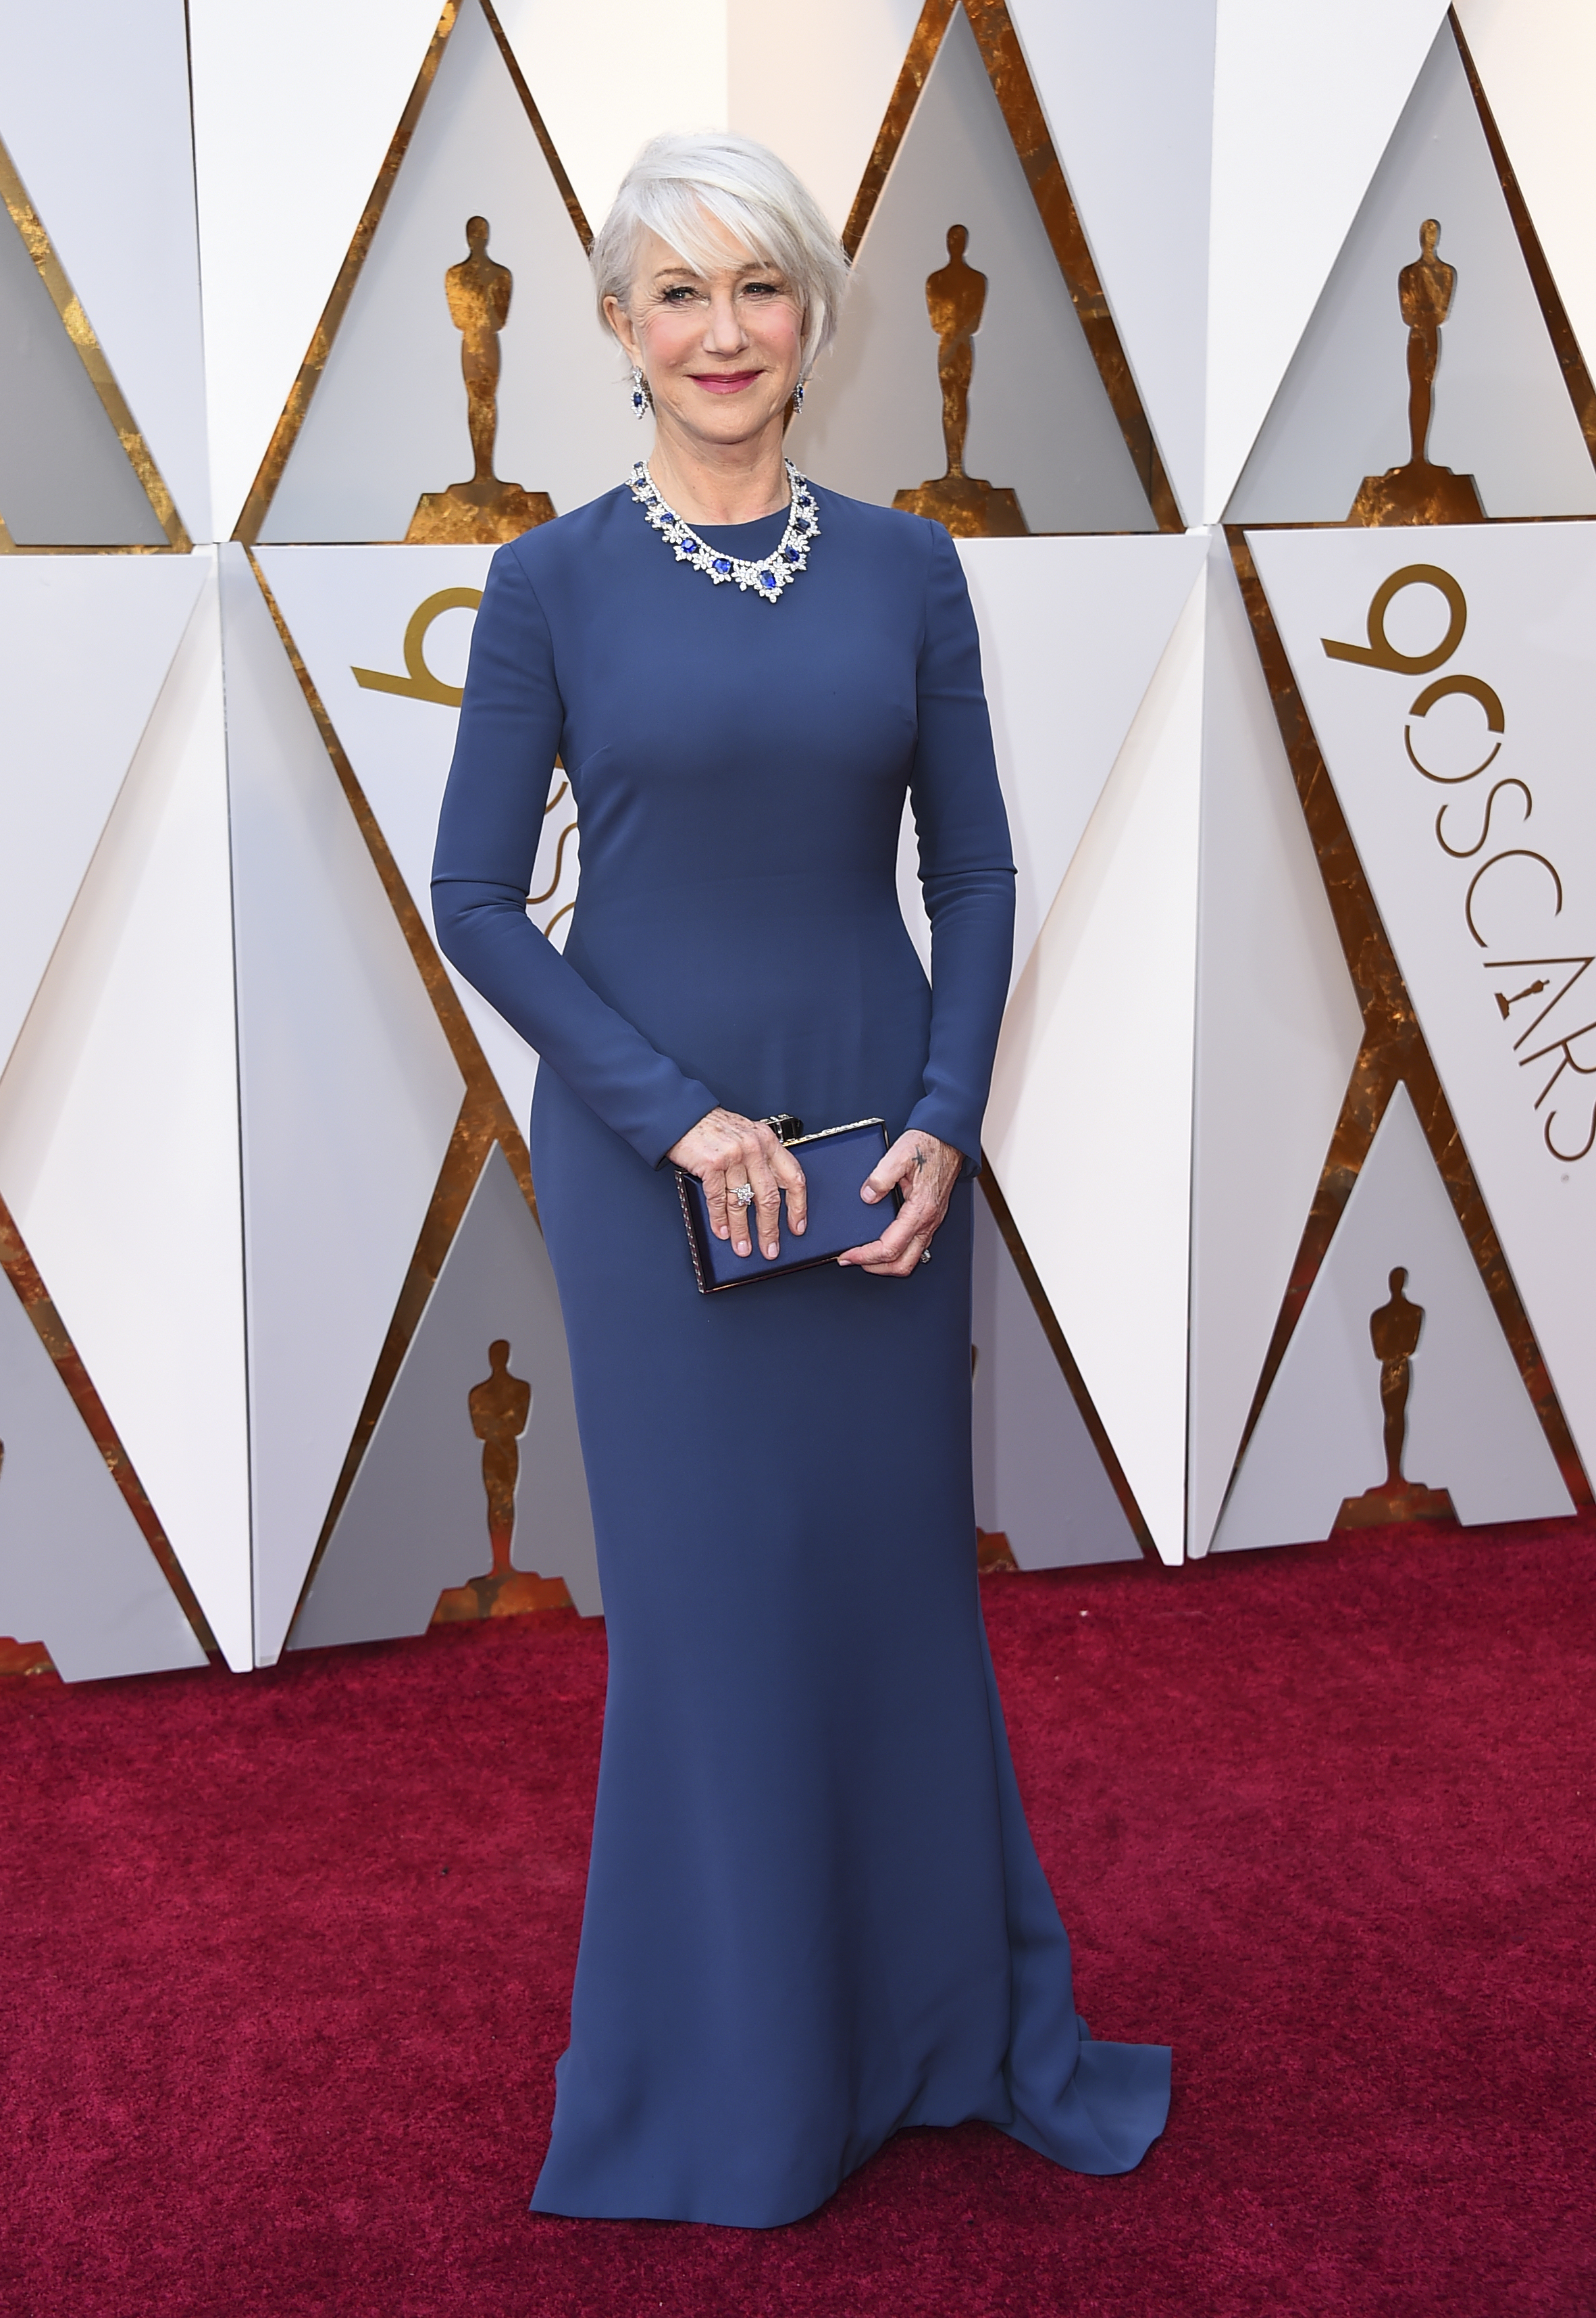 <div class='meta'><div class='origin-logo' data-origin='none'></div><span class='caption-text' data-credit='Jordan Strauss/Invision/AP'>Helen Mirren arrives at the Oscars on Sunday, March 4, 2018, at the Dolby Theatre in Los Angeles.</span></div>